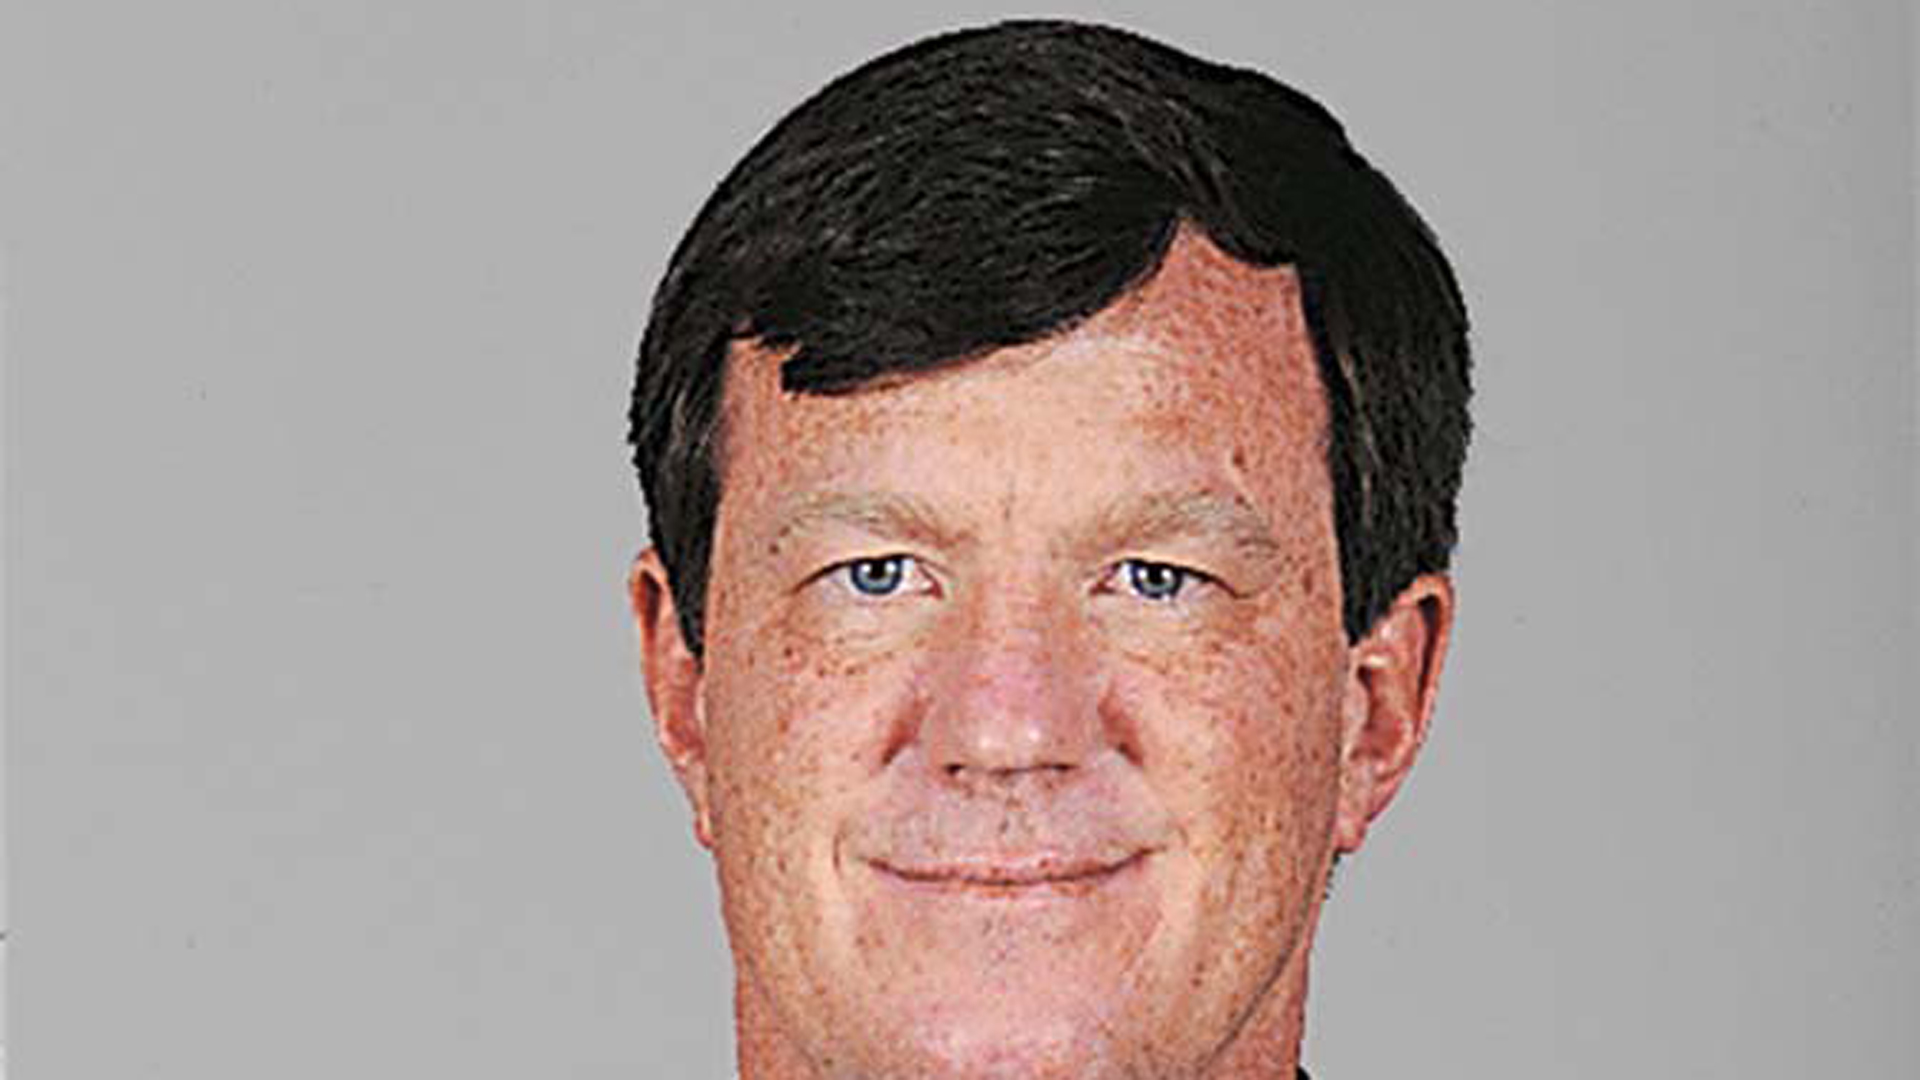 Panthers interim GM Marty Hurney put on paid leave